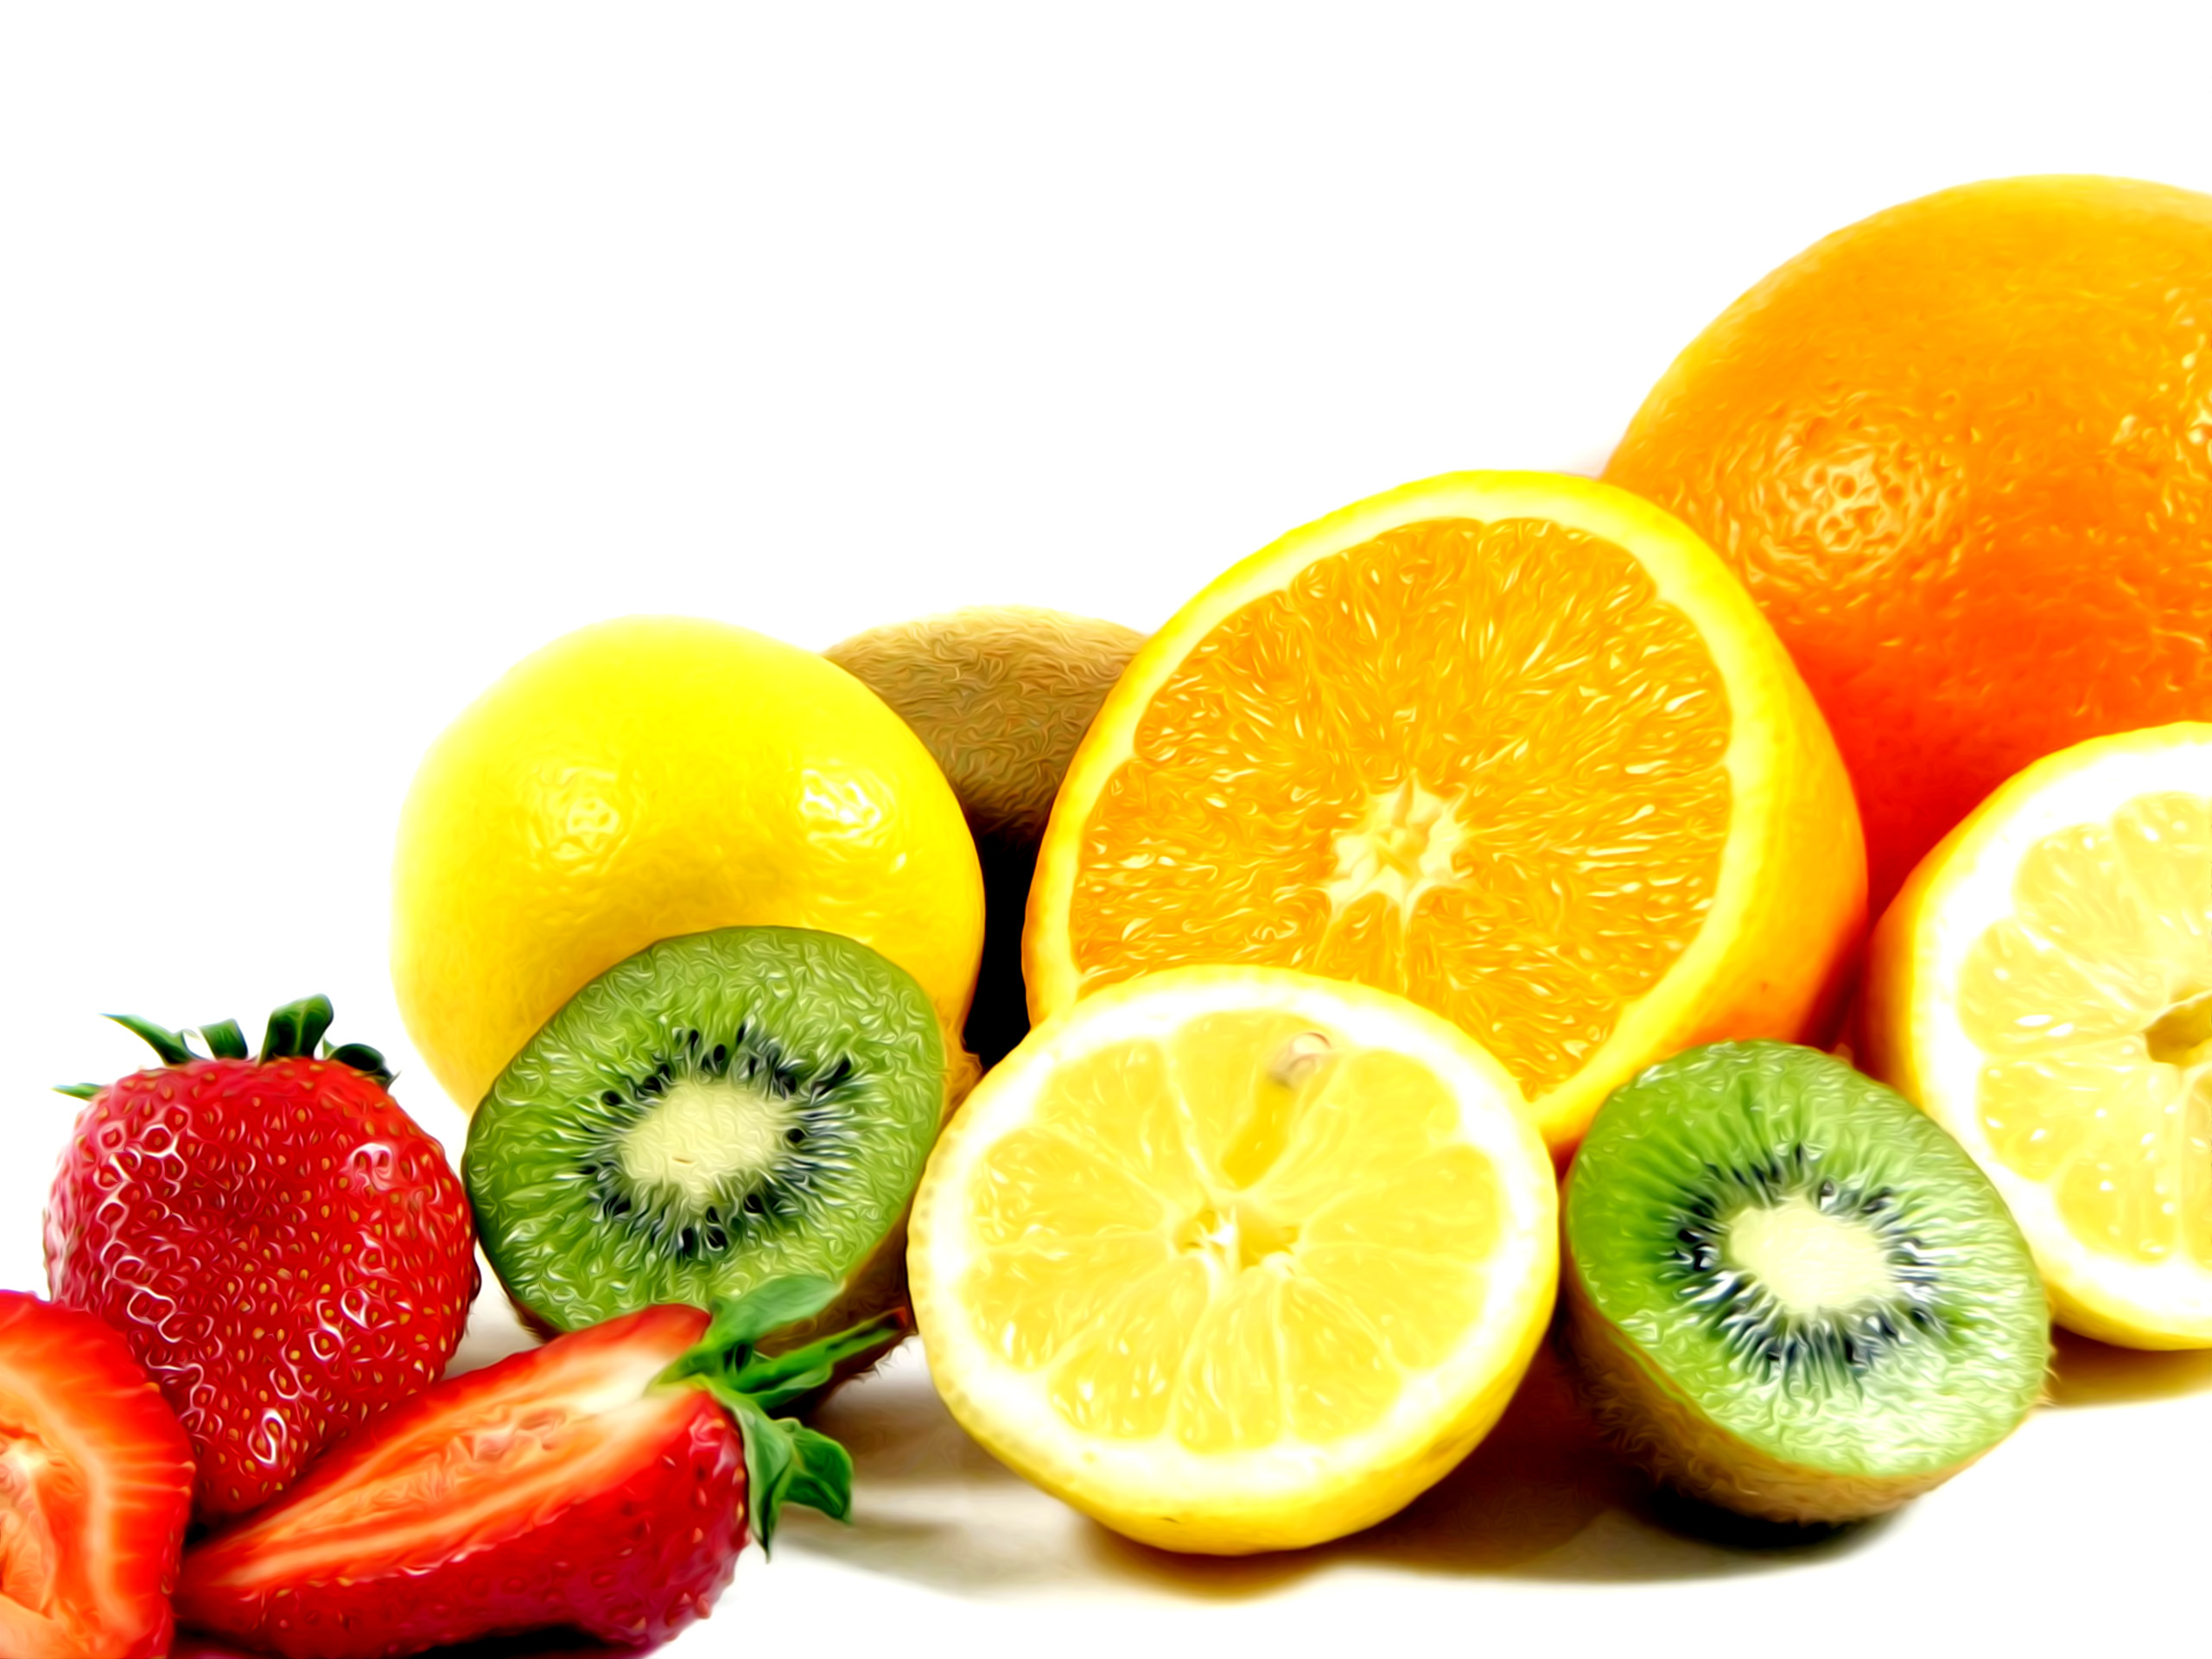 The Orange Is The Fruit Of The Citrus Species Citrus Sinensis In The Family Rutaceae It Is Also Called Sweet Orange To Distinguish It From The Related Citrus